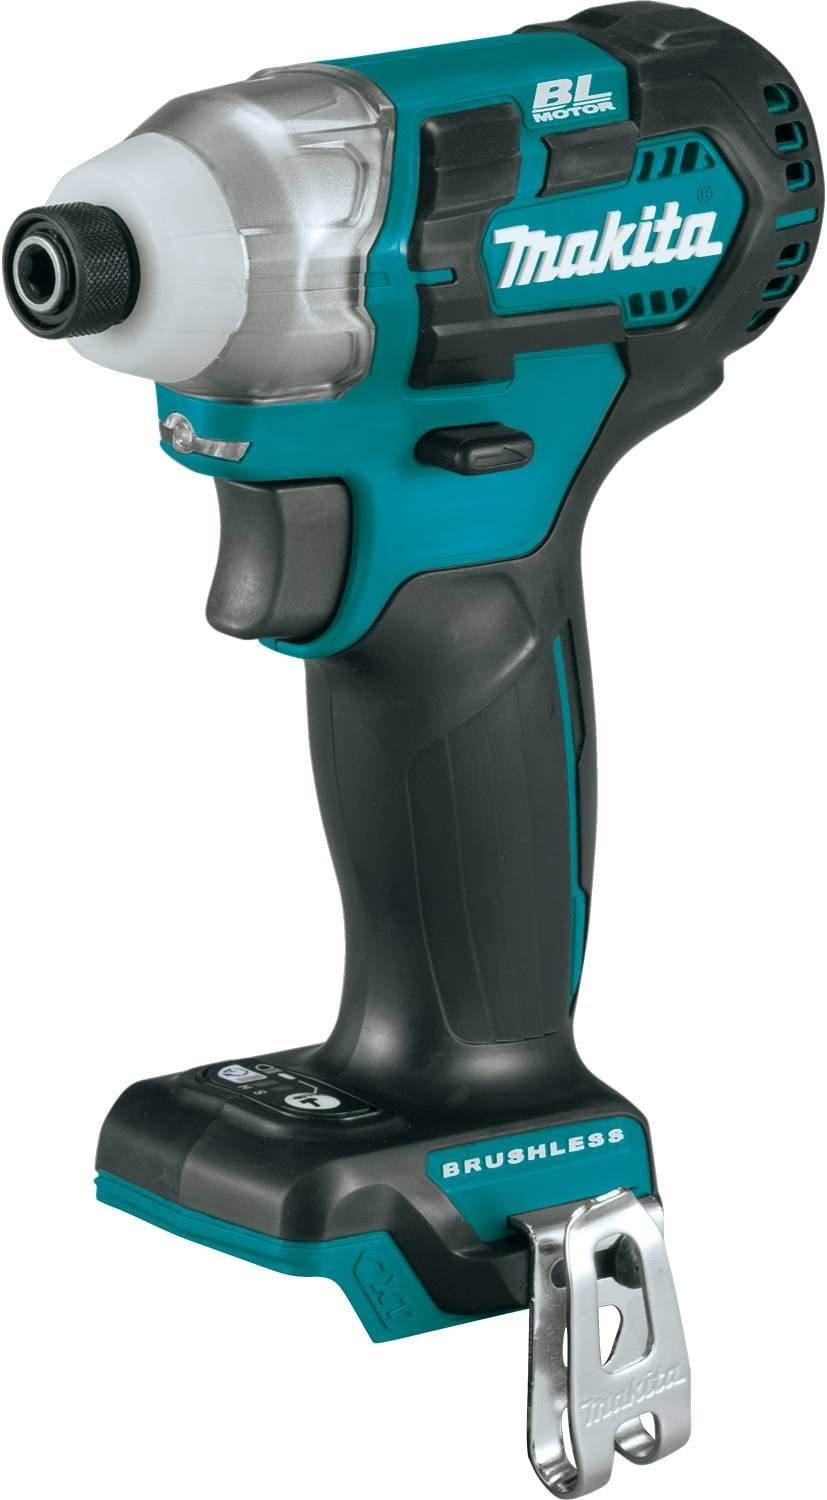 Makita DT04Z 12V Max CXT Lithium-Ion Brushless Cordless Impact Driver, Tool Only,